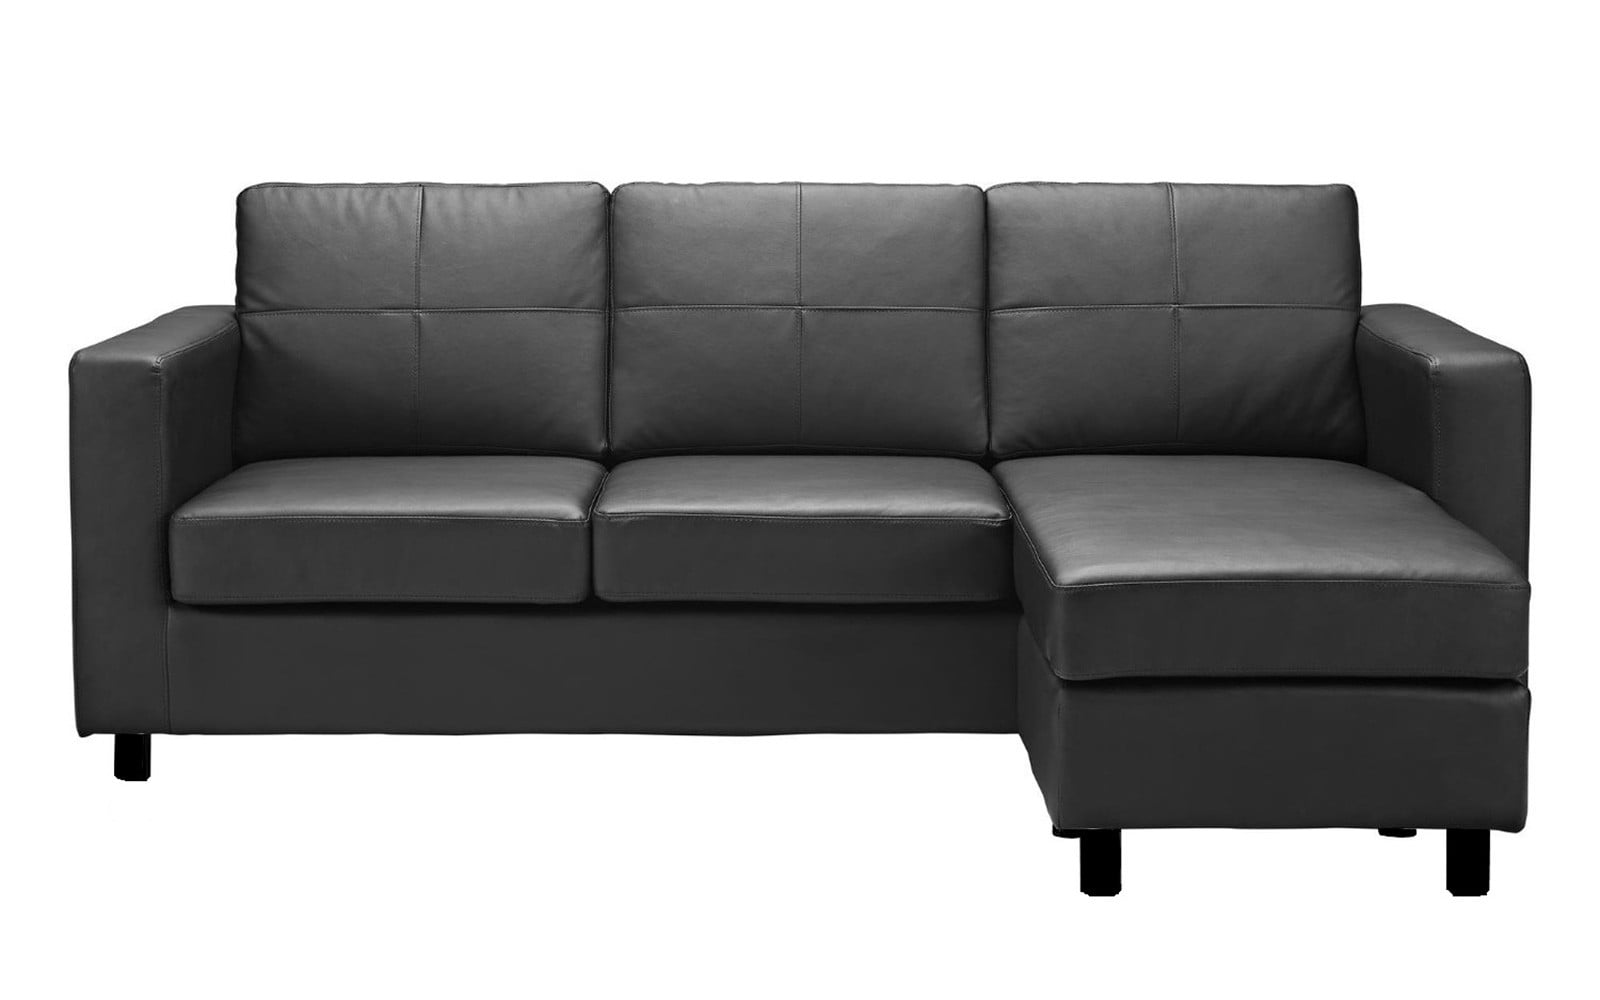 Great Modern Reversible Small Space Configurable Bonded Leather Sectional Sofa    Walmart.com